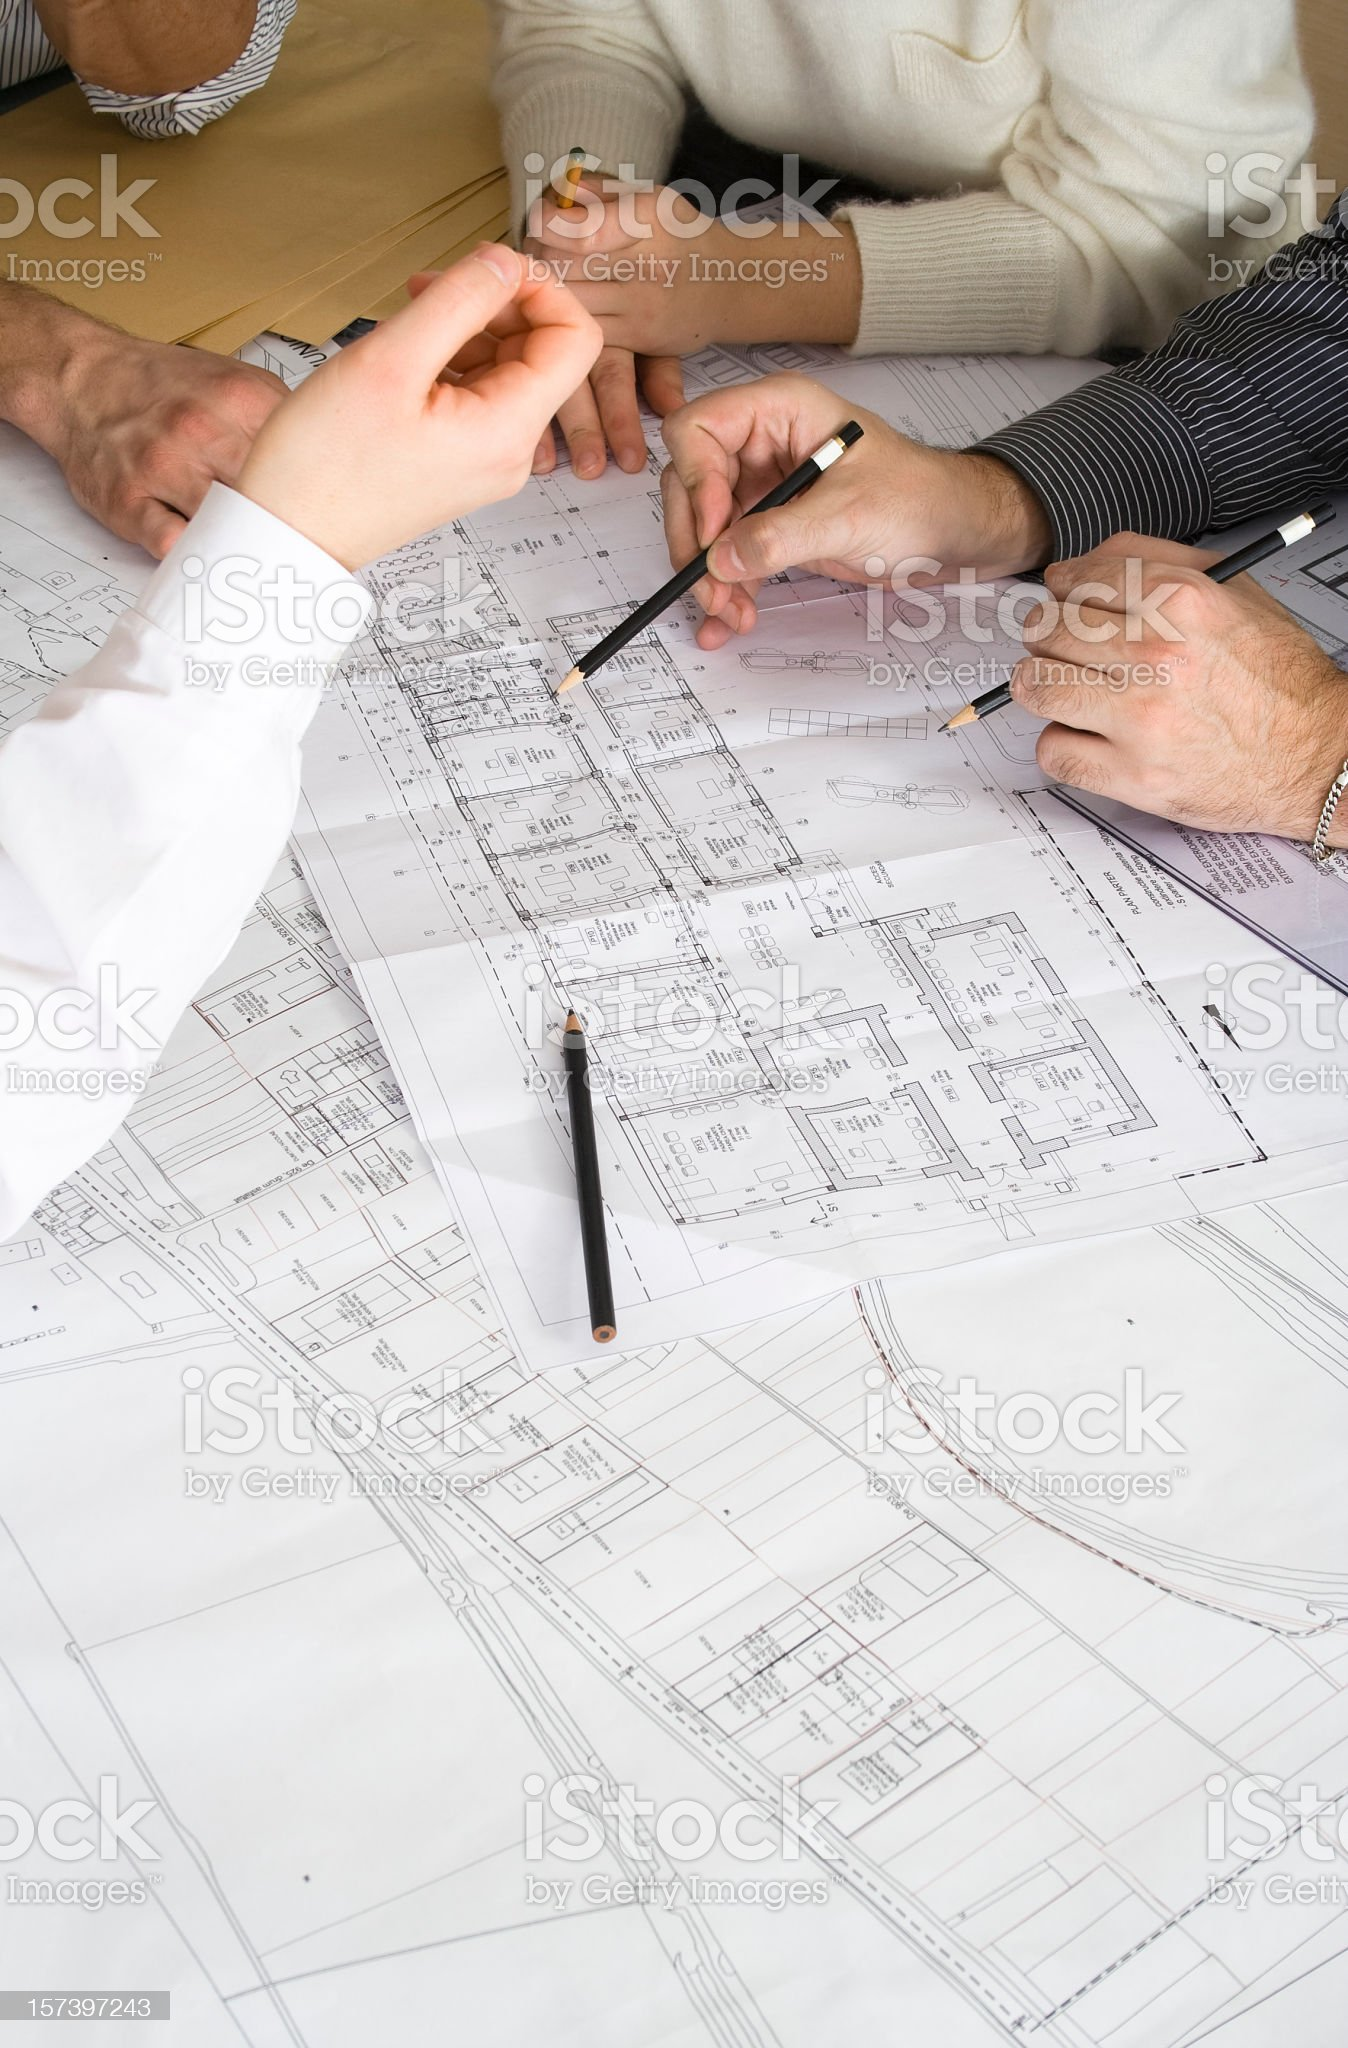 Several pairs of hands working together on blueprints royalty-free stock photo